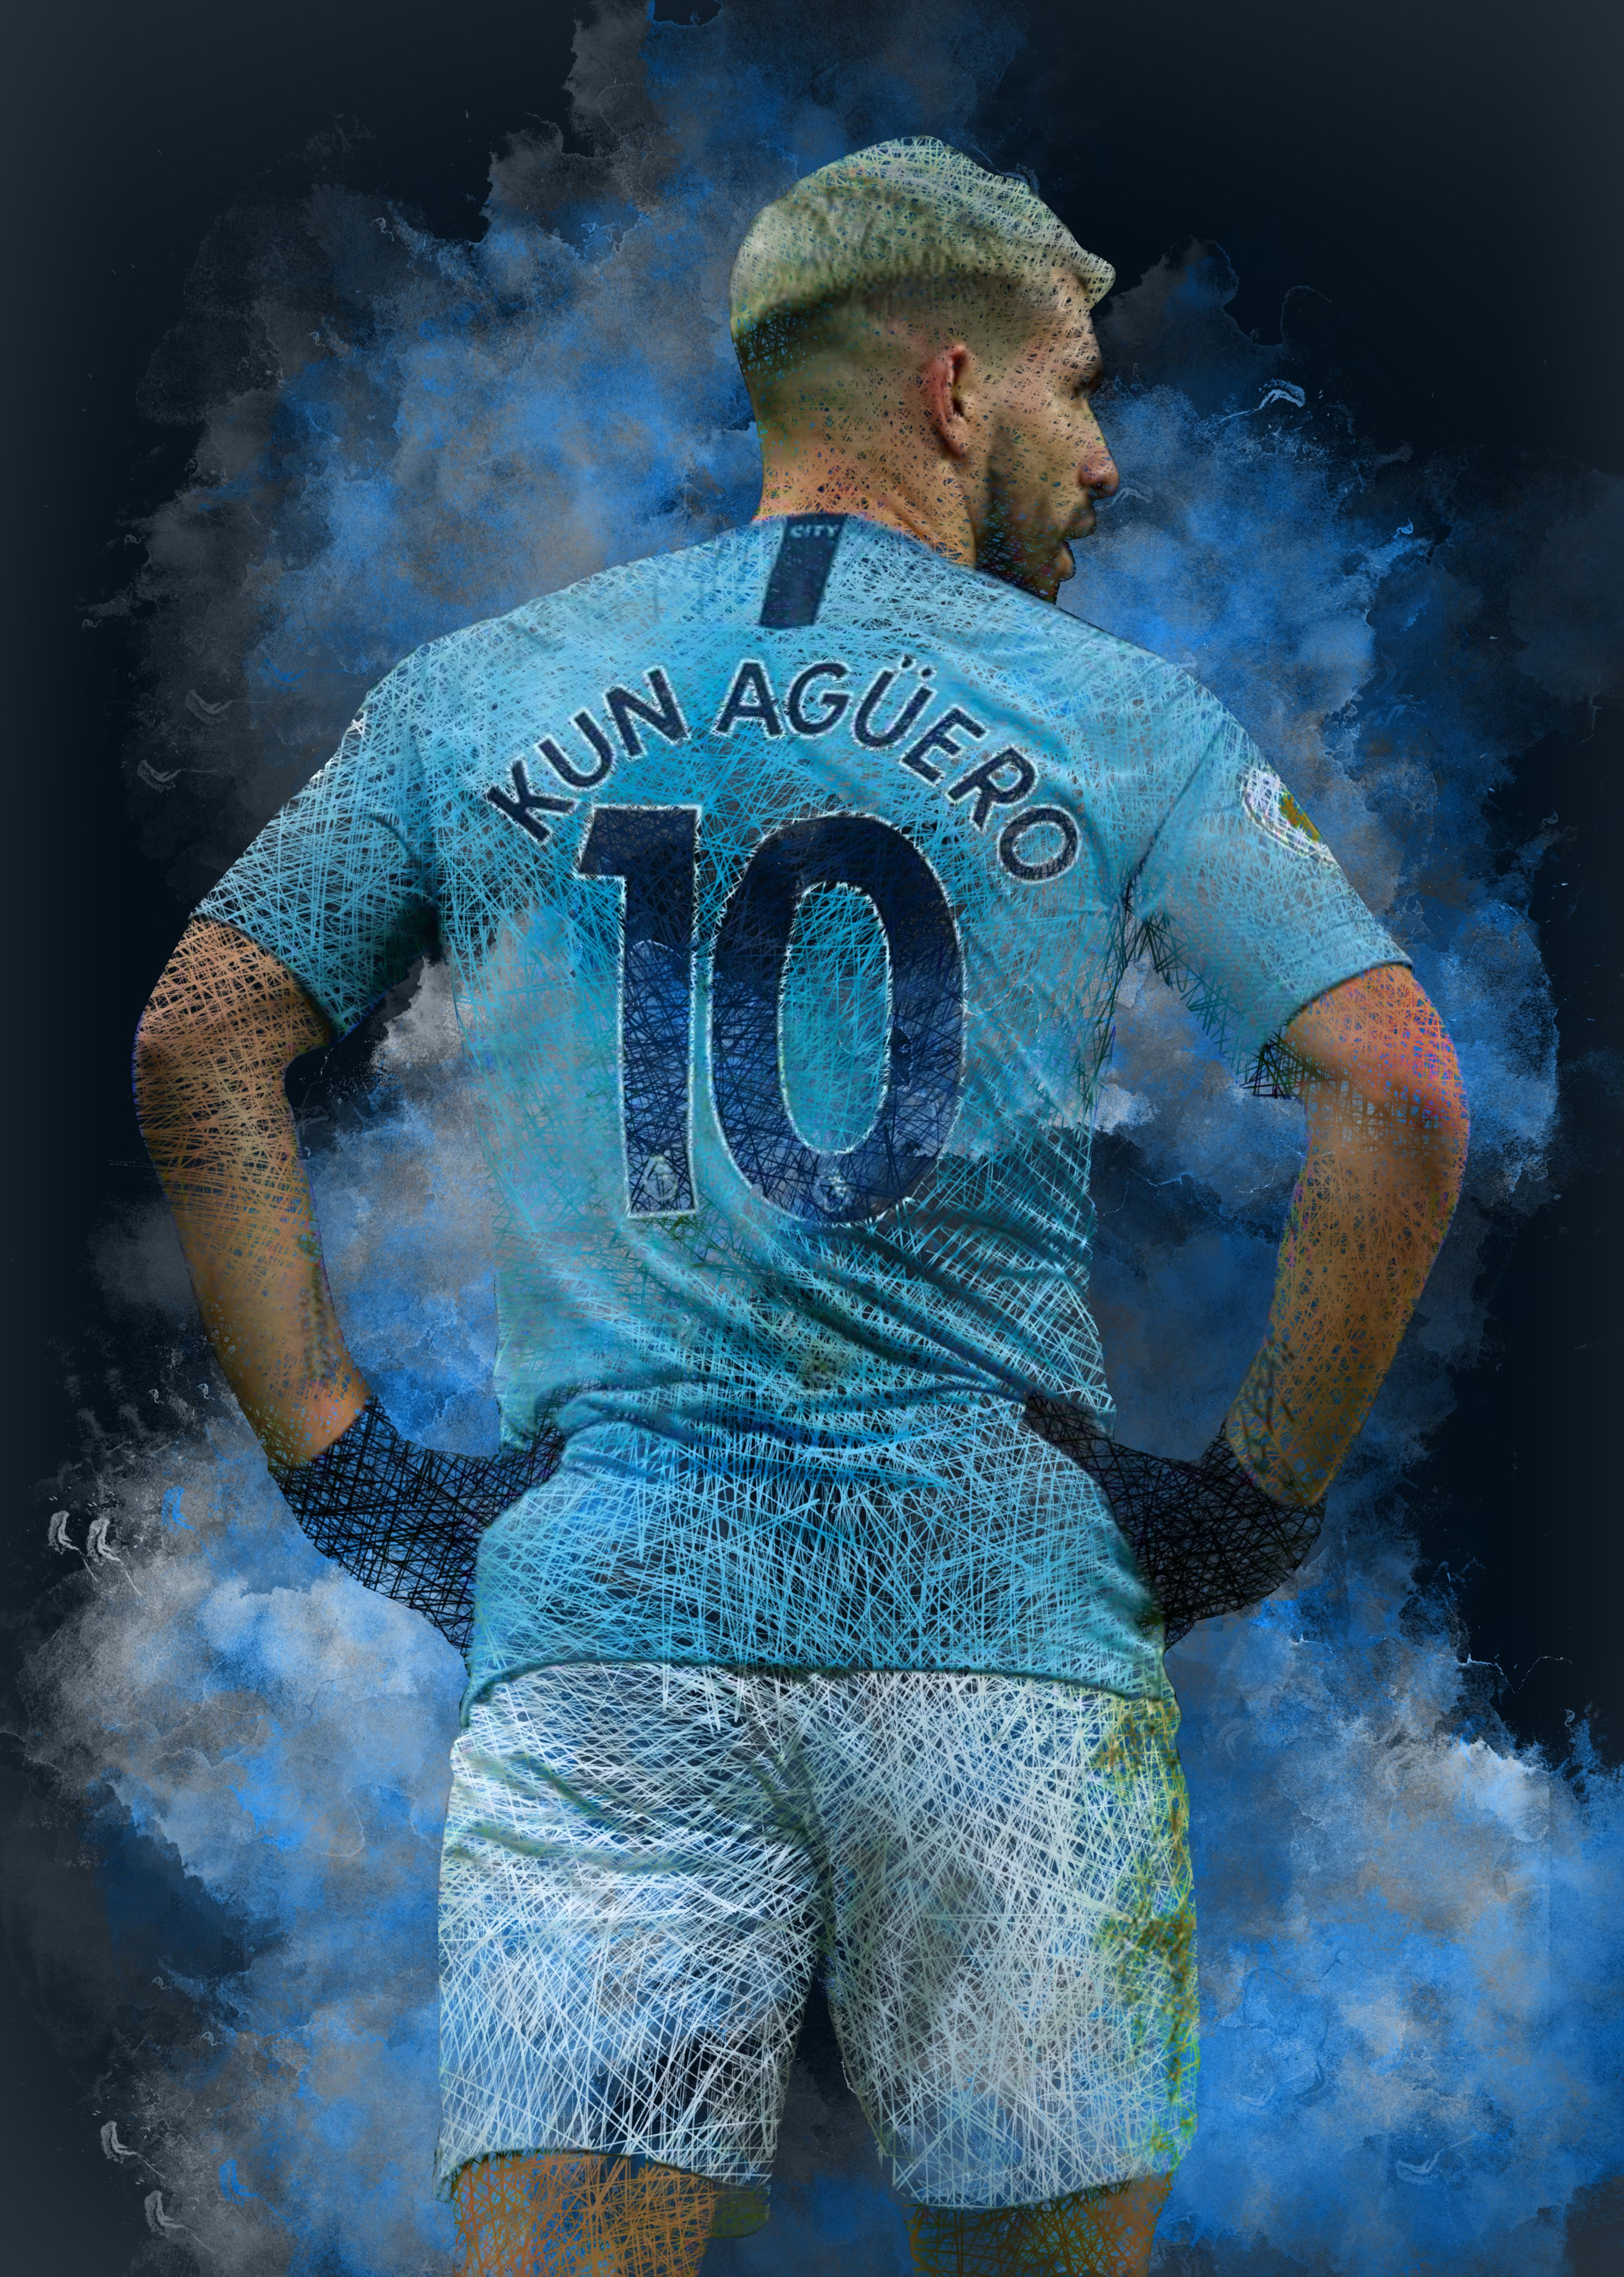 Man City Sergio Aguero Top Striker Premiership Football Art Canvas Pictures